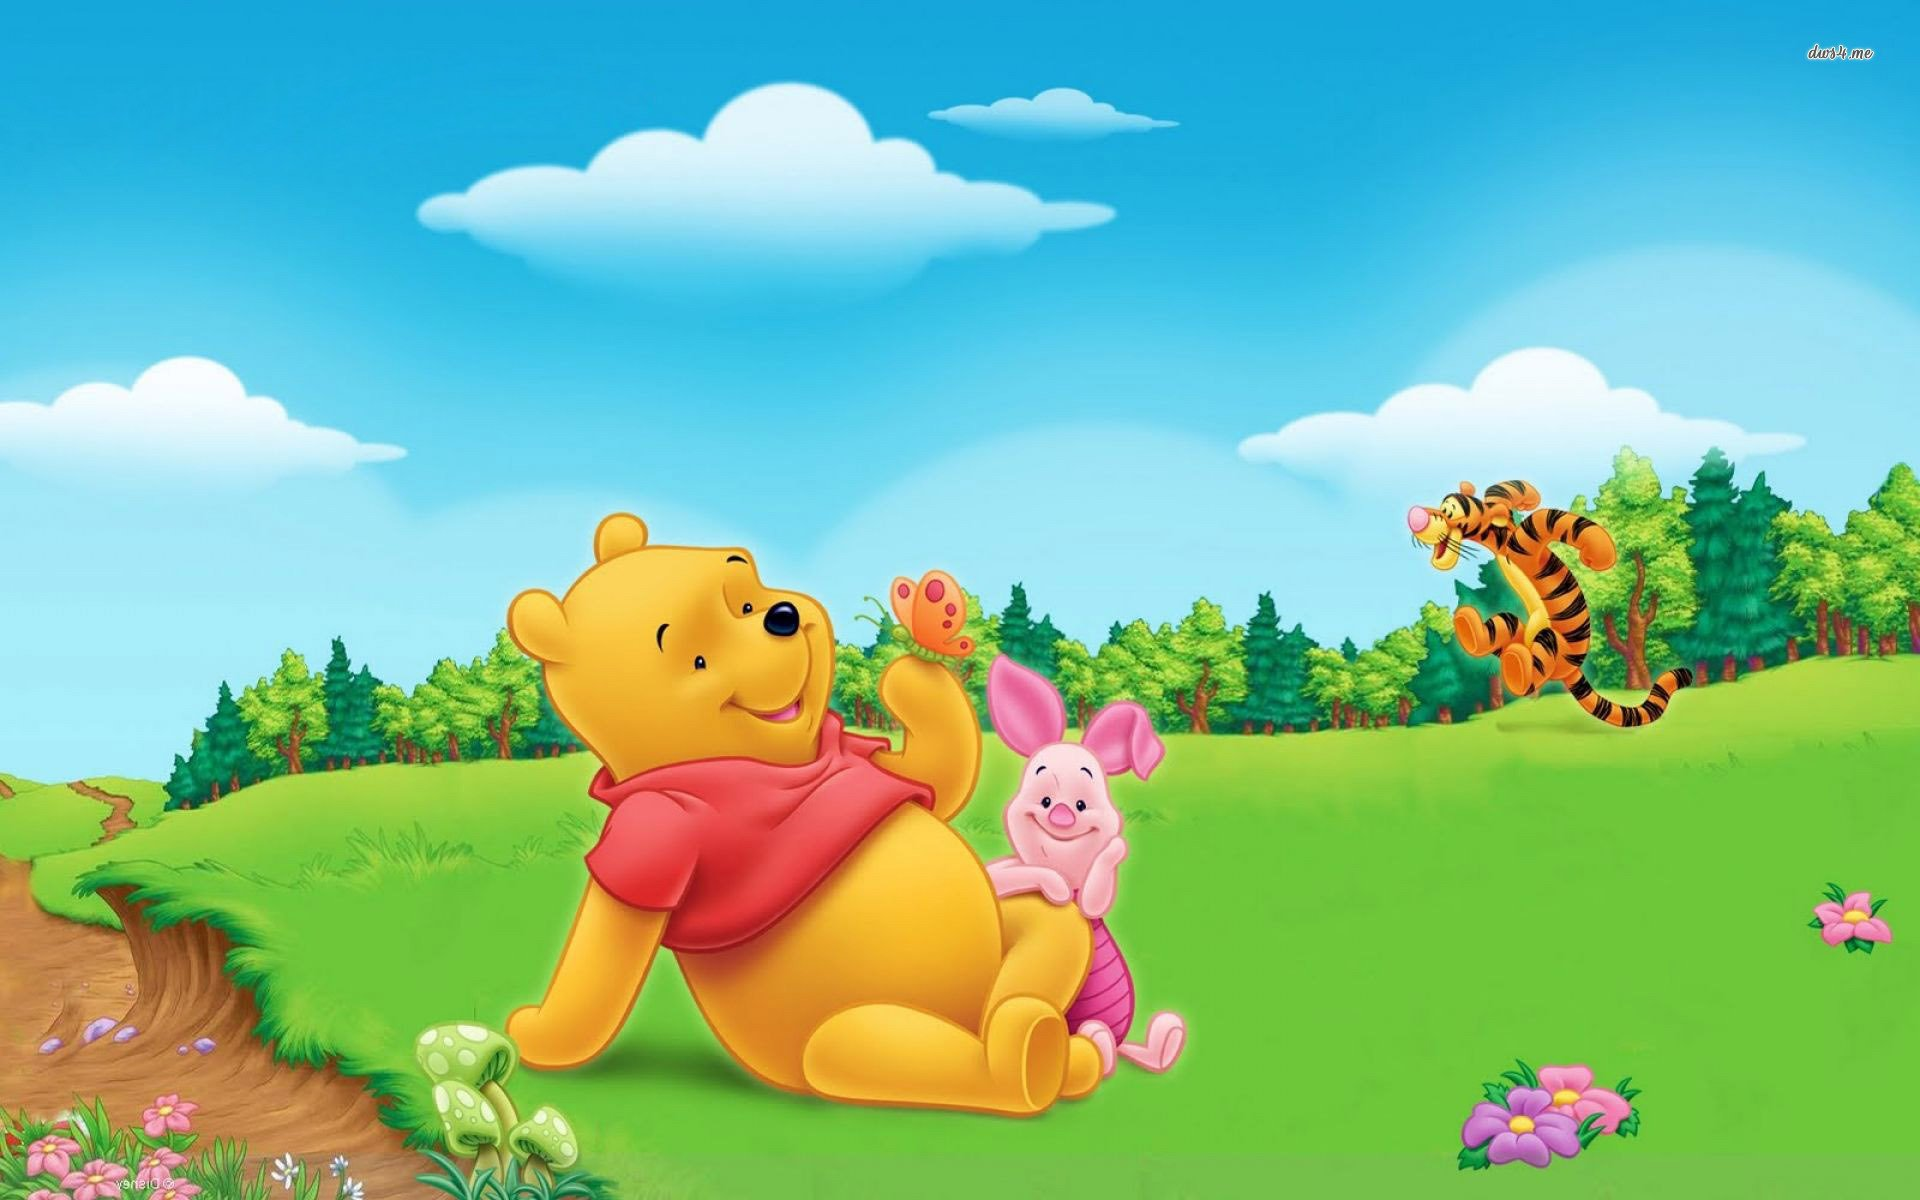 52 pooh hd wallpapers background images wallpaper abyss hd wallpaper background image id521450 voltagebd Images